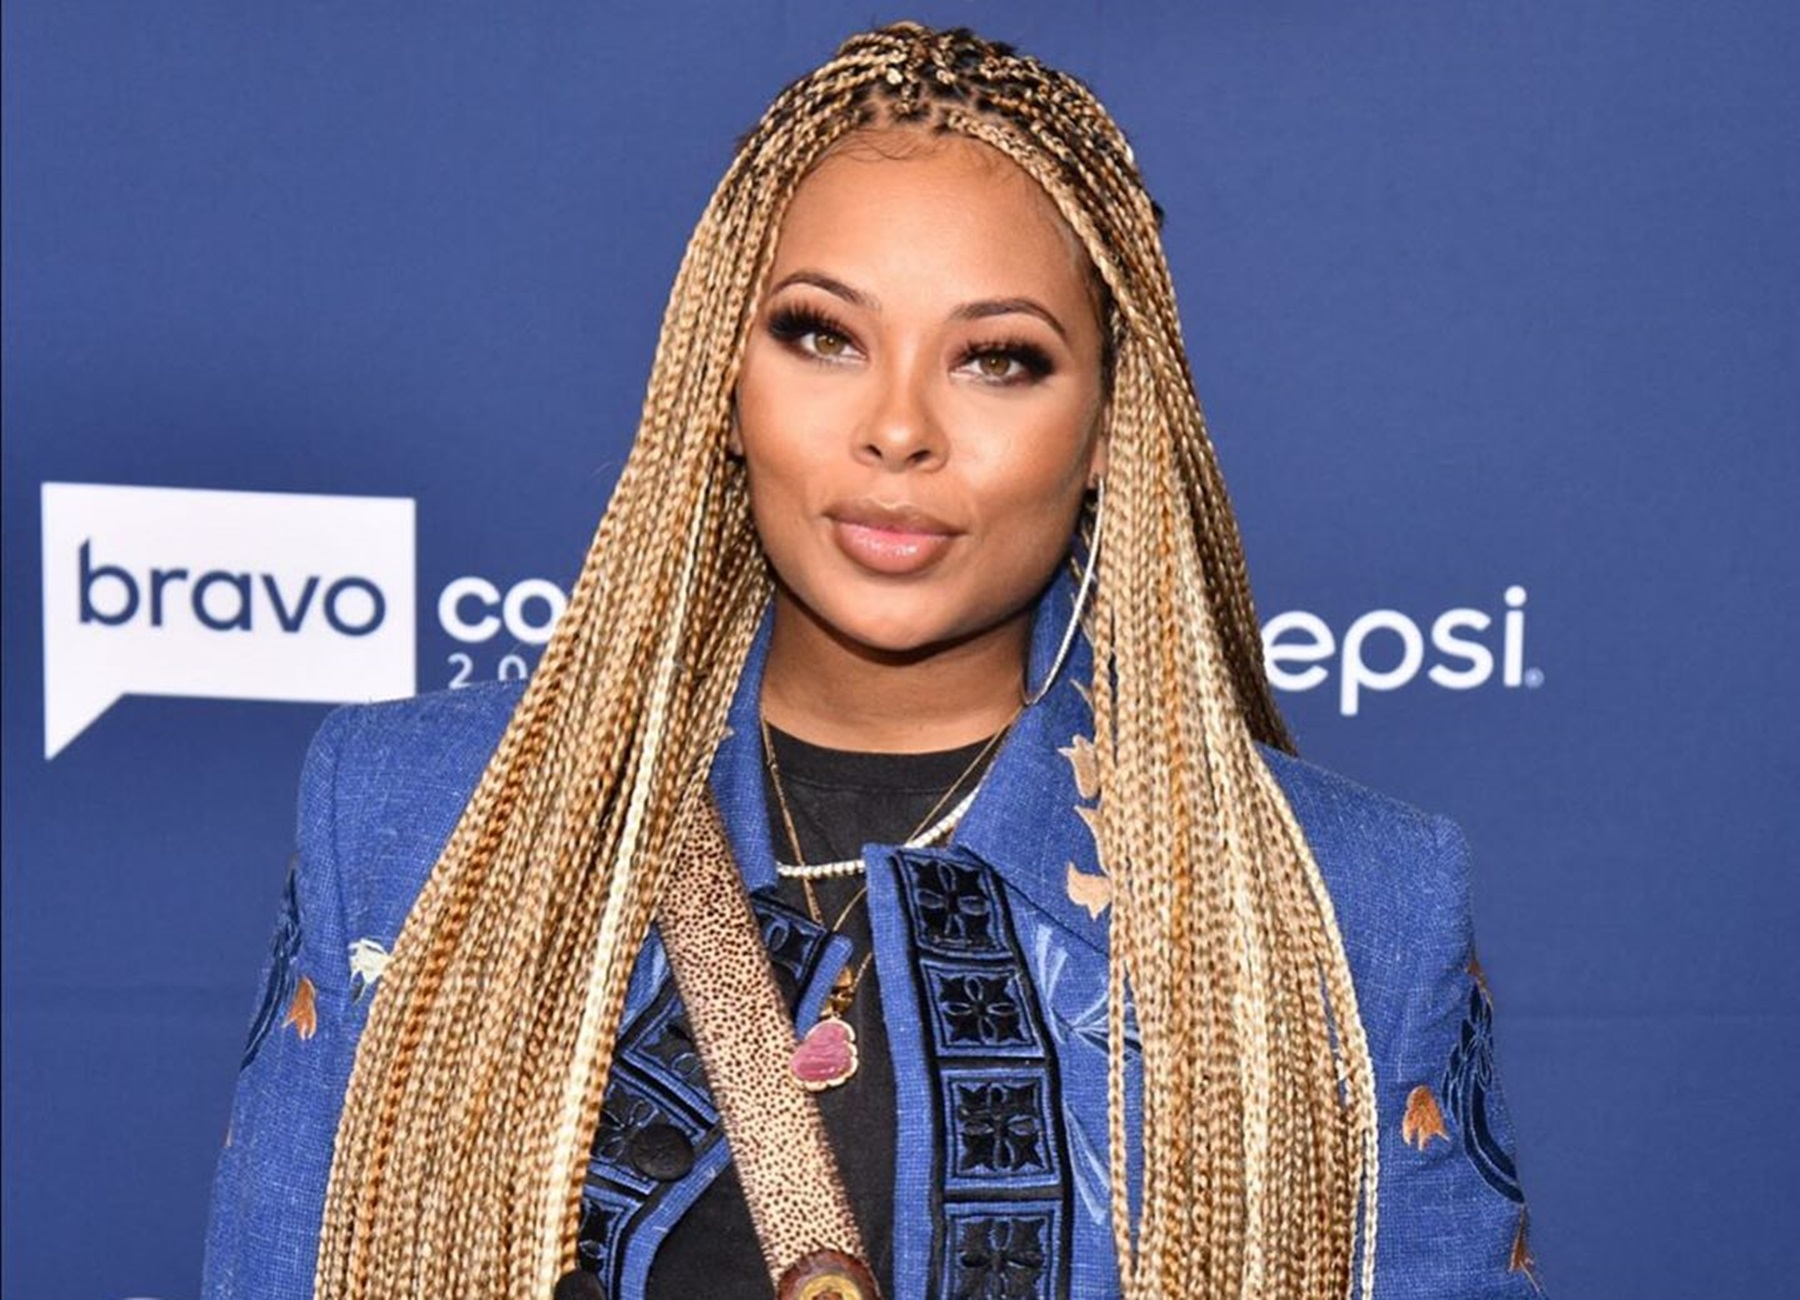 Eva Marcille Addresses Georgia's Primary Election, But Fans Bring Up The RHOA Virtual Reunion